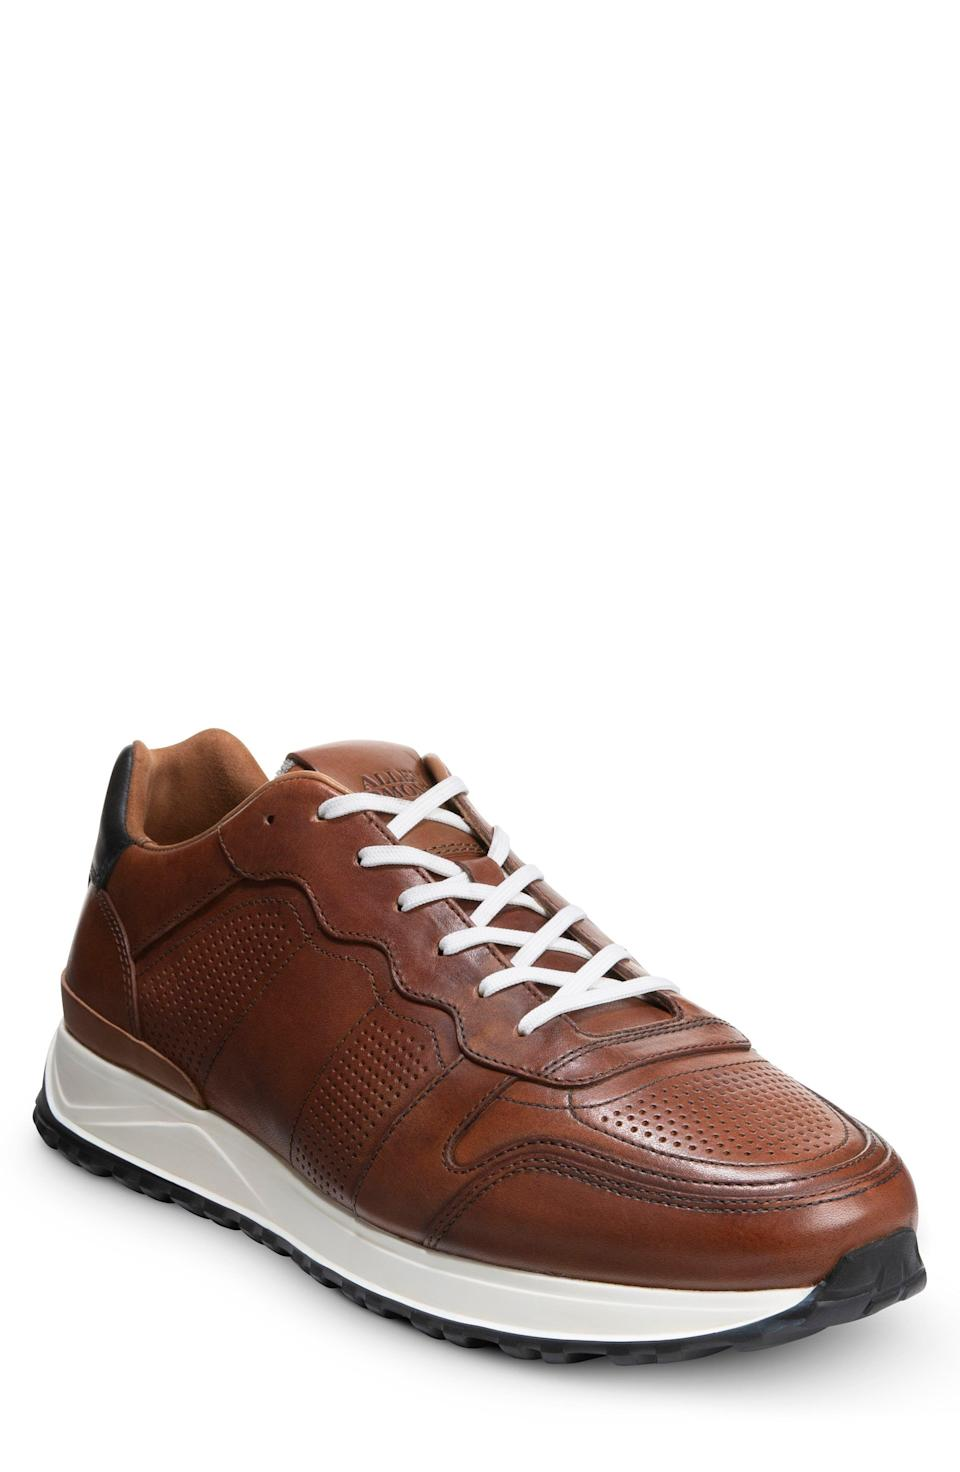 """<p><strong>ALLEN EDMONDS</strong></p><p>nordstrom.com</p><p><strong>$275.00</strong></p><p><a href=""""https://go.redirectingat.com?id=74968X1596630&url=https%3A%2F%2Fwww.nordstrom.com%2Fs%2Fallen-edmonds-lightyear-sneaker-men%2F5913320&sref=https%3A%2F%2Fwww.menshealth.com%2Fstyle%2Fg36283507%2Fmens-dress-sneakers%2F"""" rel=""""nofollow noopener"""" target=""""_blank"""" data-ylk=""""slk:BUY IT HERE"""" class=""""link rapid-noclick-resp"""">BUY IT HERE</a></p><p>This classic brown leather sneaker by Allen Edmonds is complete with perforation for maximum breathability (a feature absent from many of its counterparts). The white laces and white outsole make the tony chestnut leather pop. </p>"""